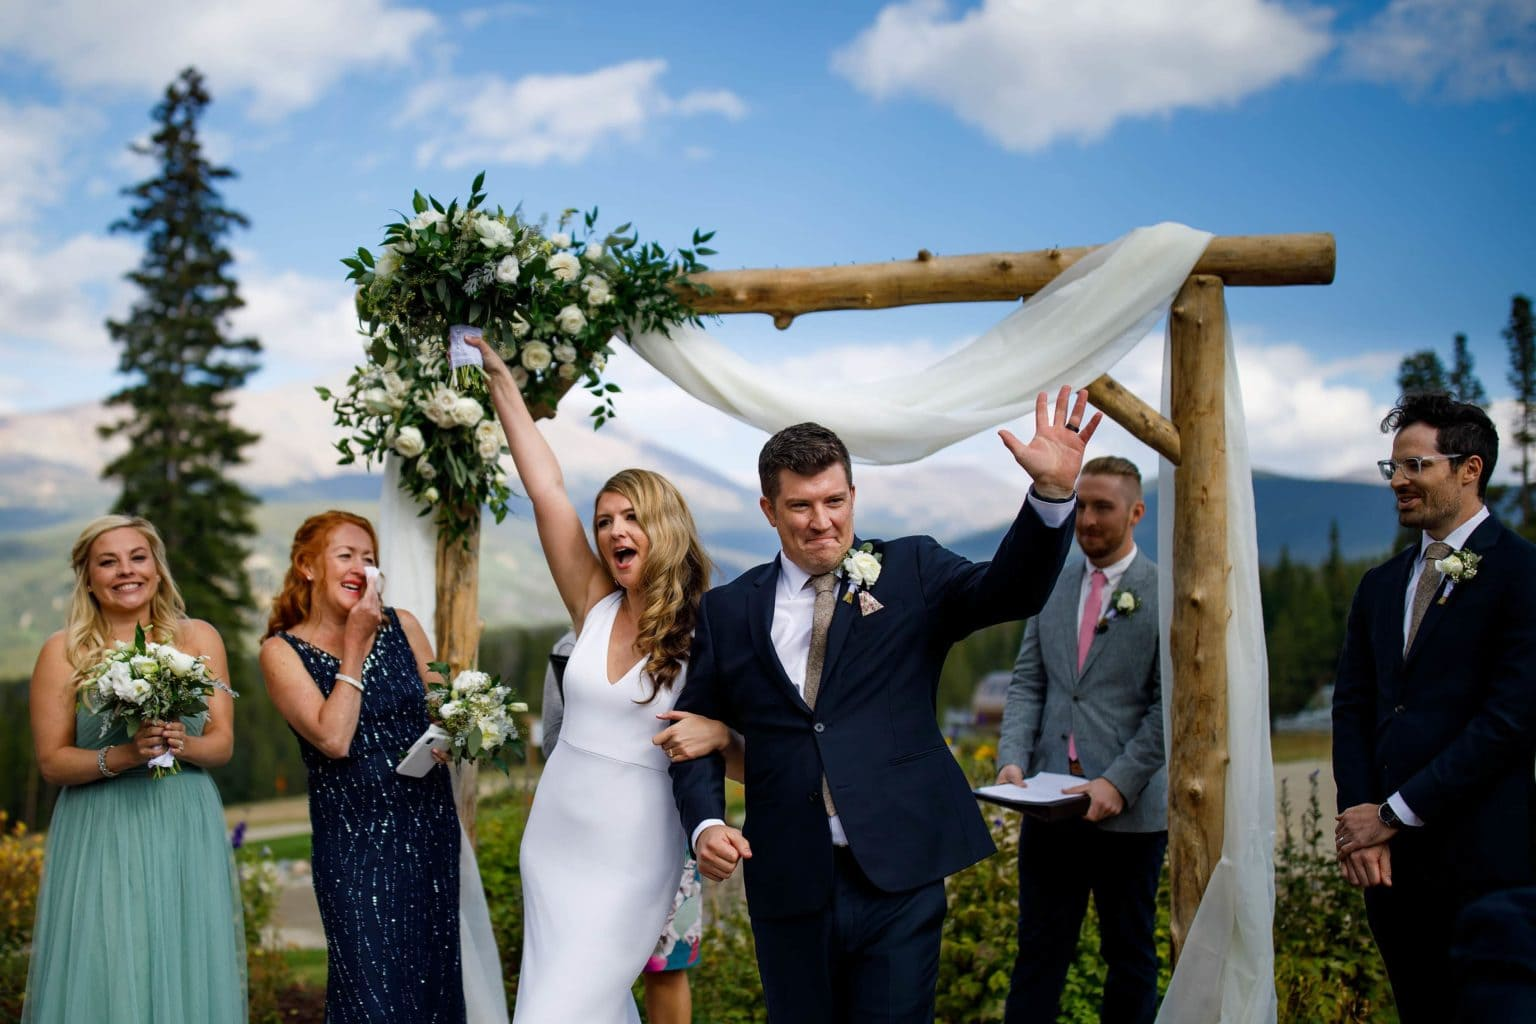 8 Reasons Why You Should Hire A Wedding Photojournalist For Your Wedding